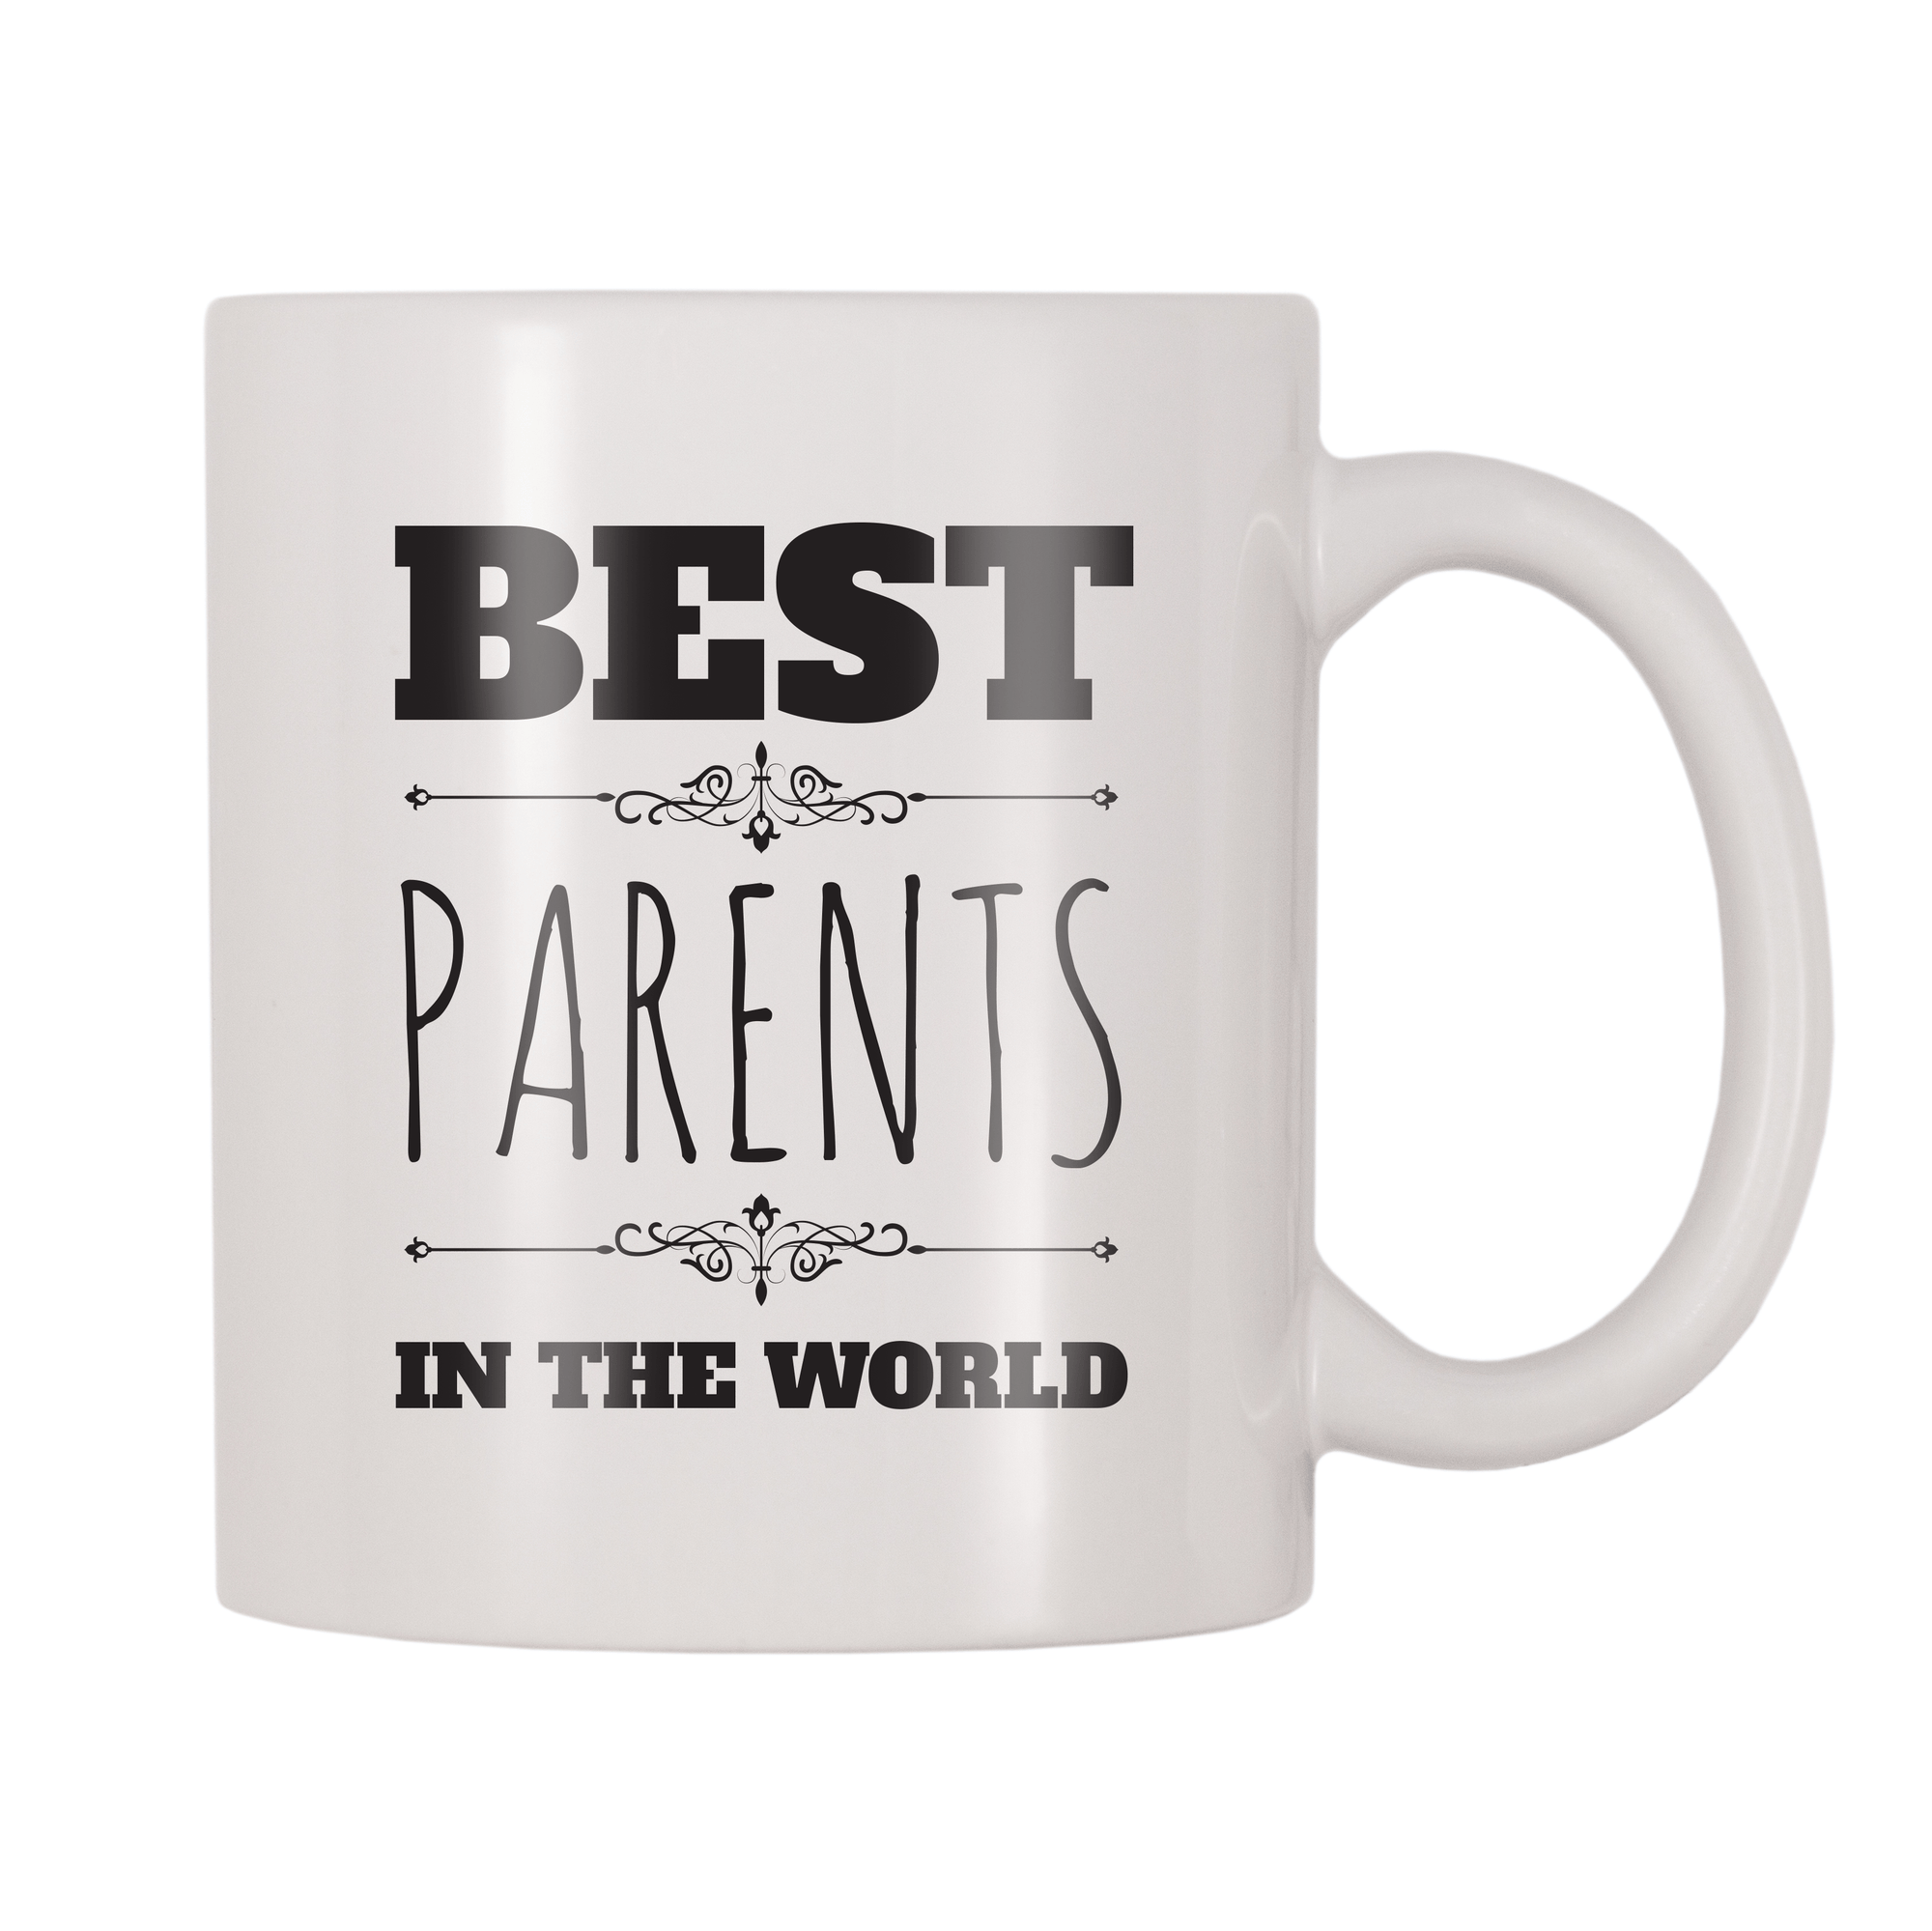 Best Parents In The World 11oz Coffee Mug